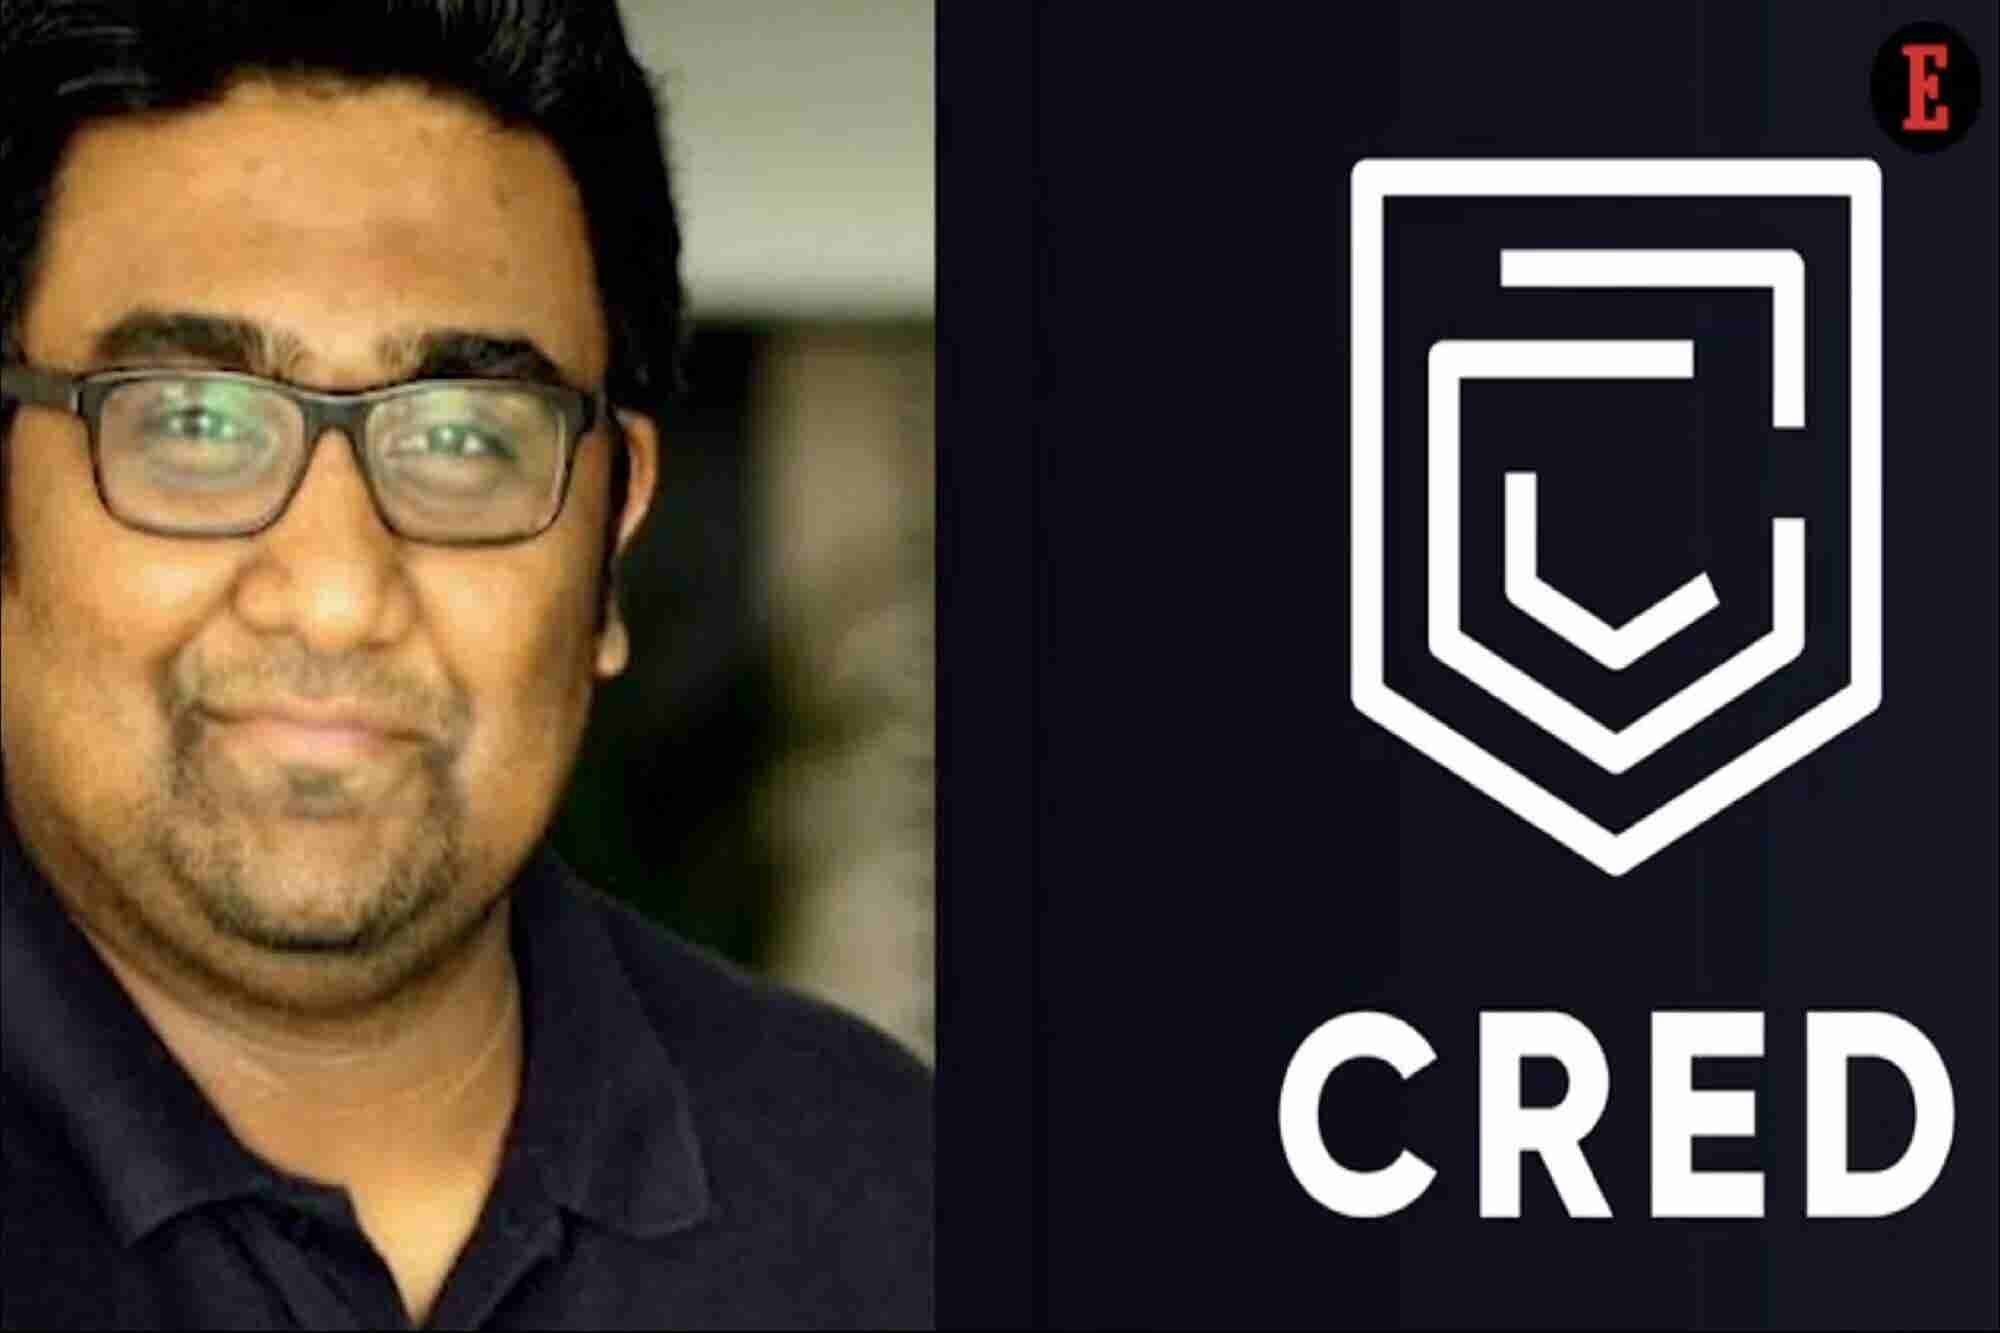 Week Wrap Up: From FreeCharge Founder's New Venture to Week's Hottest News. Here's All You Need to Know